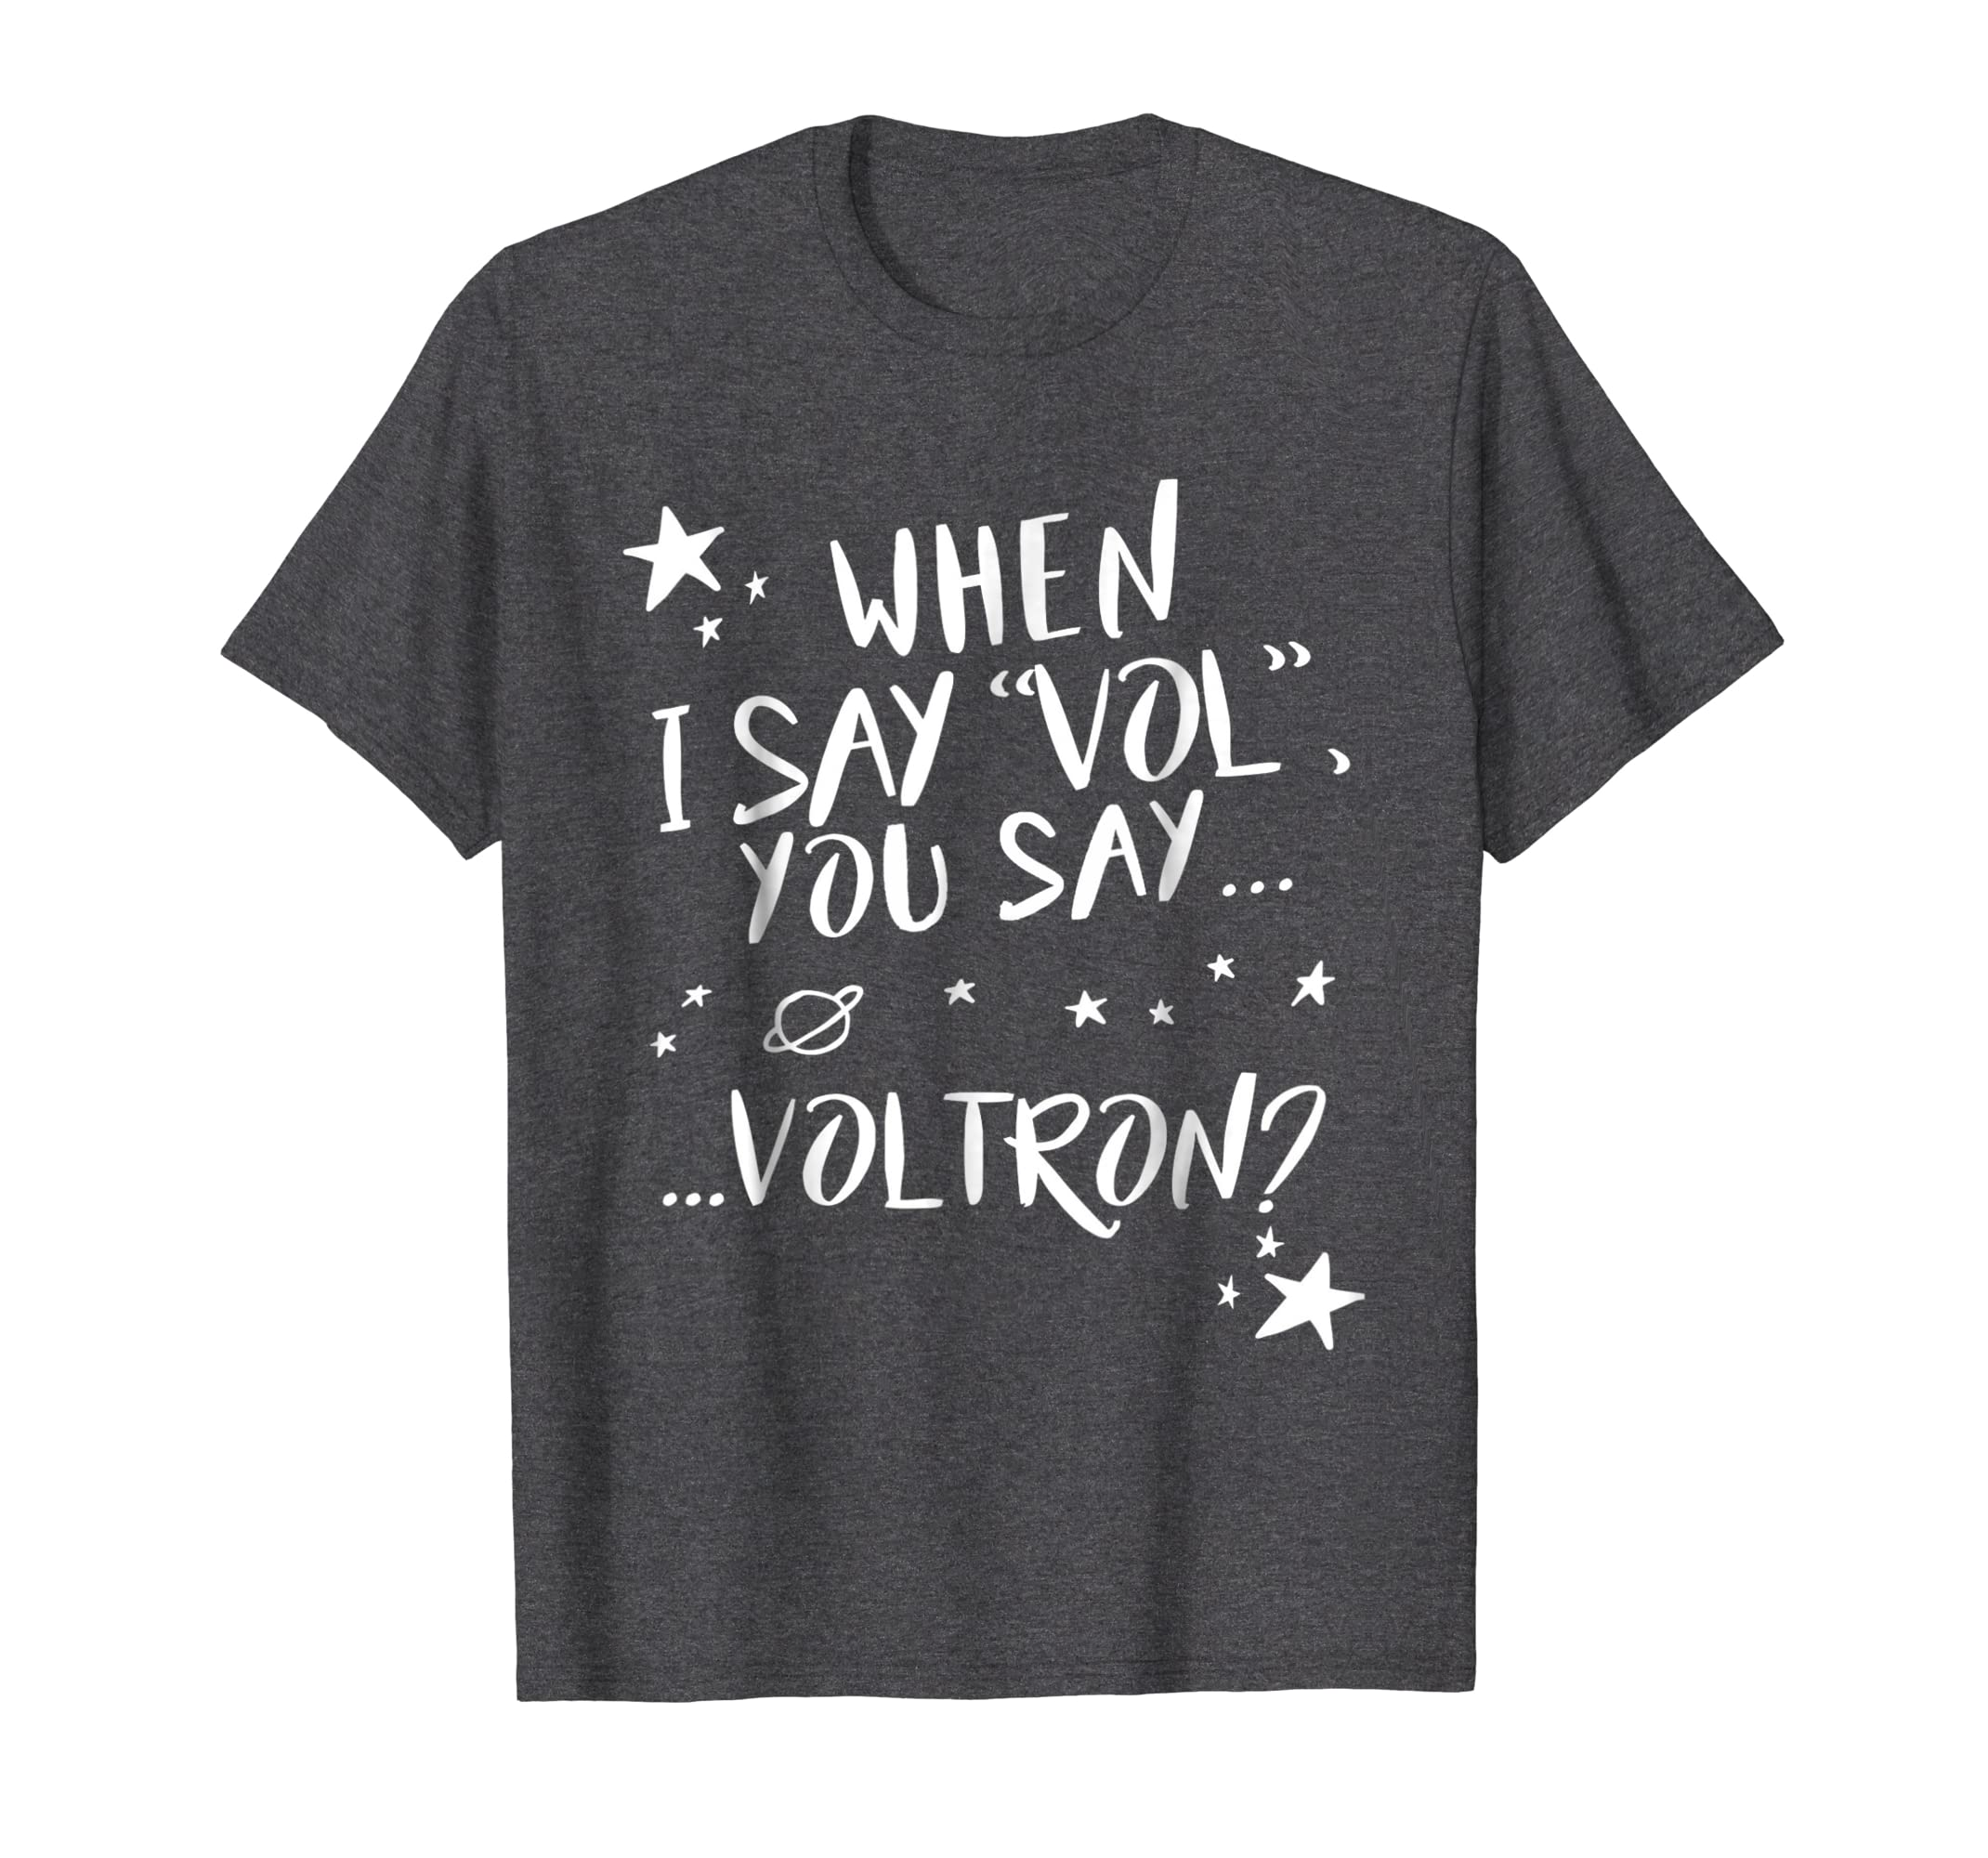 When I say vol you say voltron tshirts-Teehay